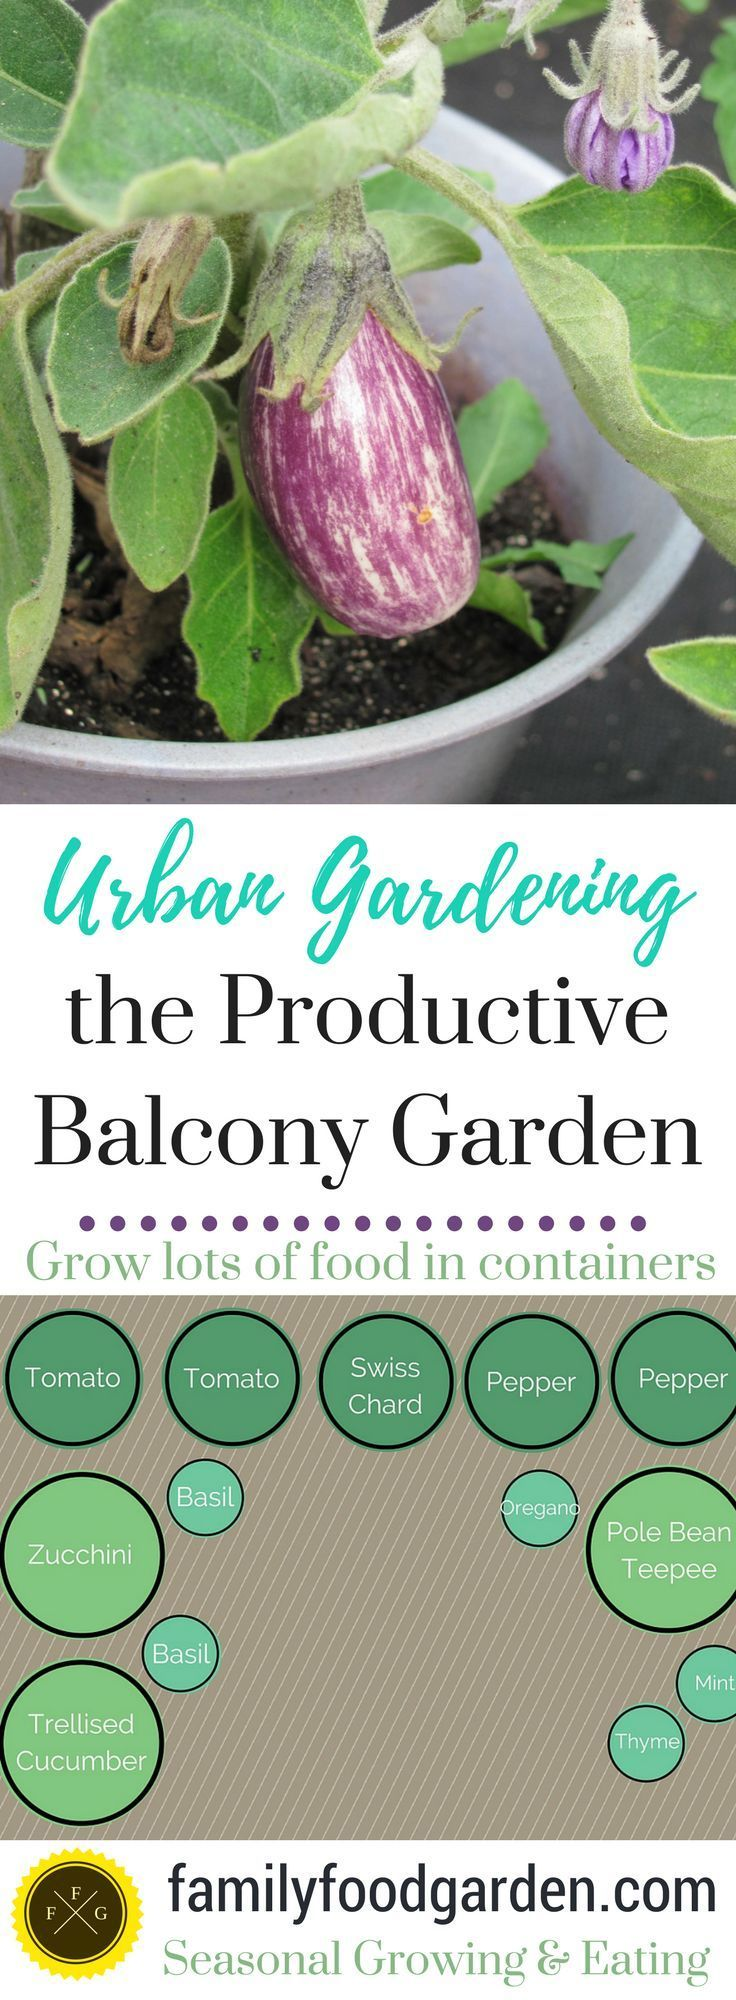 Do you live in the city? Do you still want to grow some food? If you have enough sun exposure then you could grow a productive little balcony garden!  Today I wanted to share some crops that are great for urban container gardening. They also happen to have great dollar value which means that even